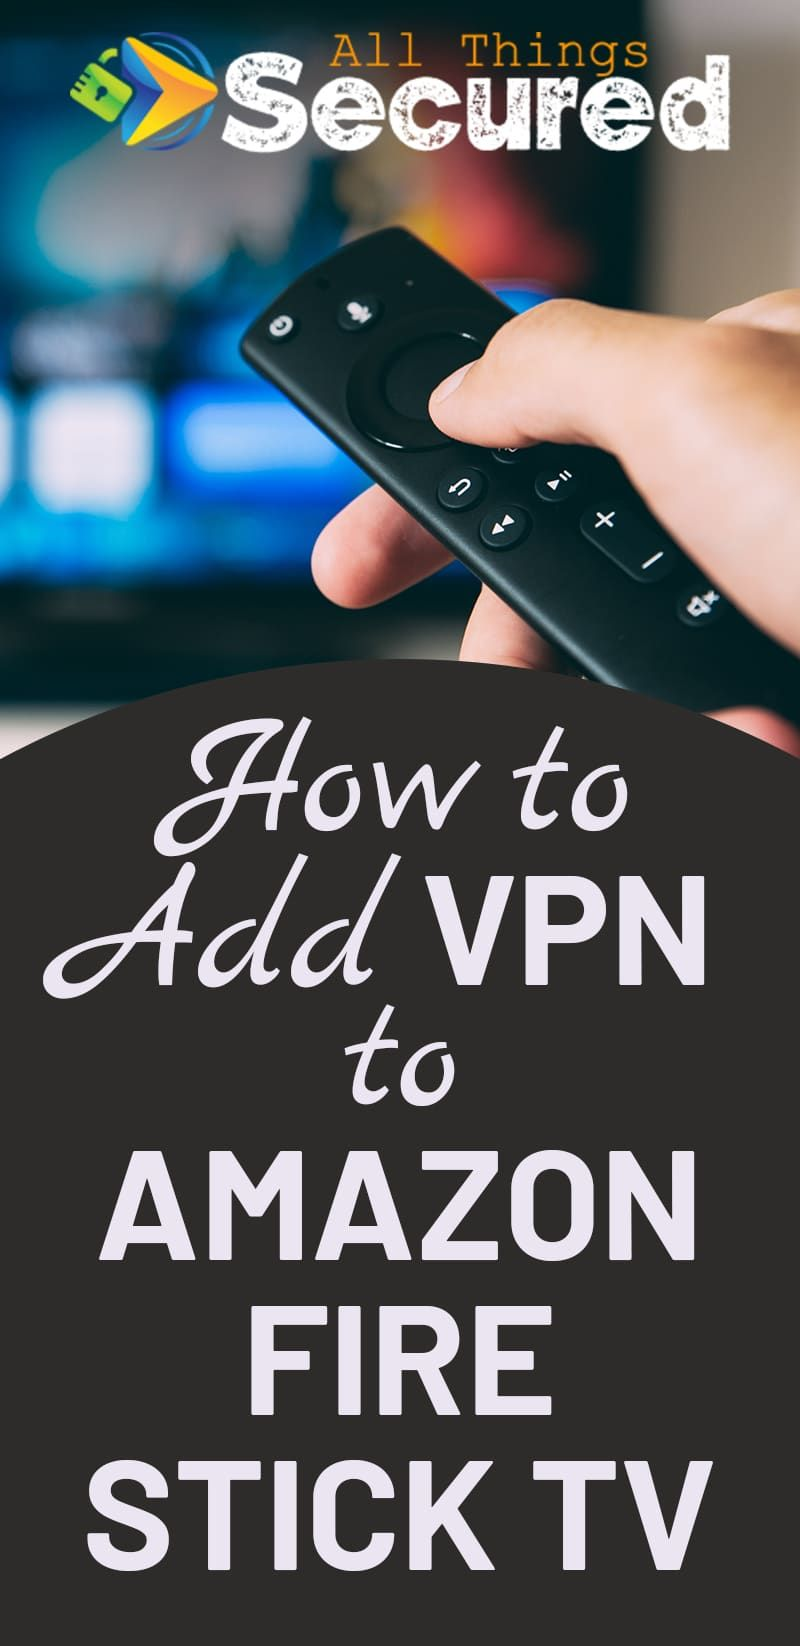 How to Install a VPN on Amazon Fire TV Stick (With images